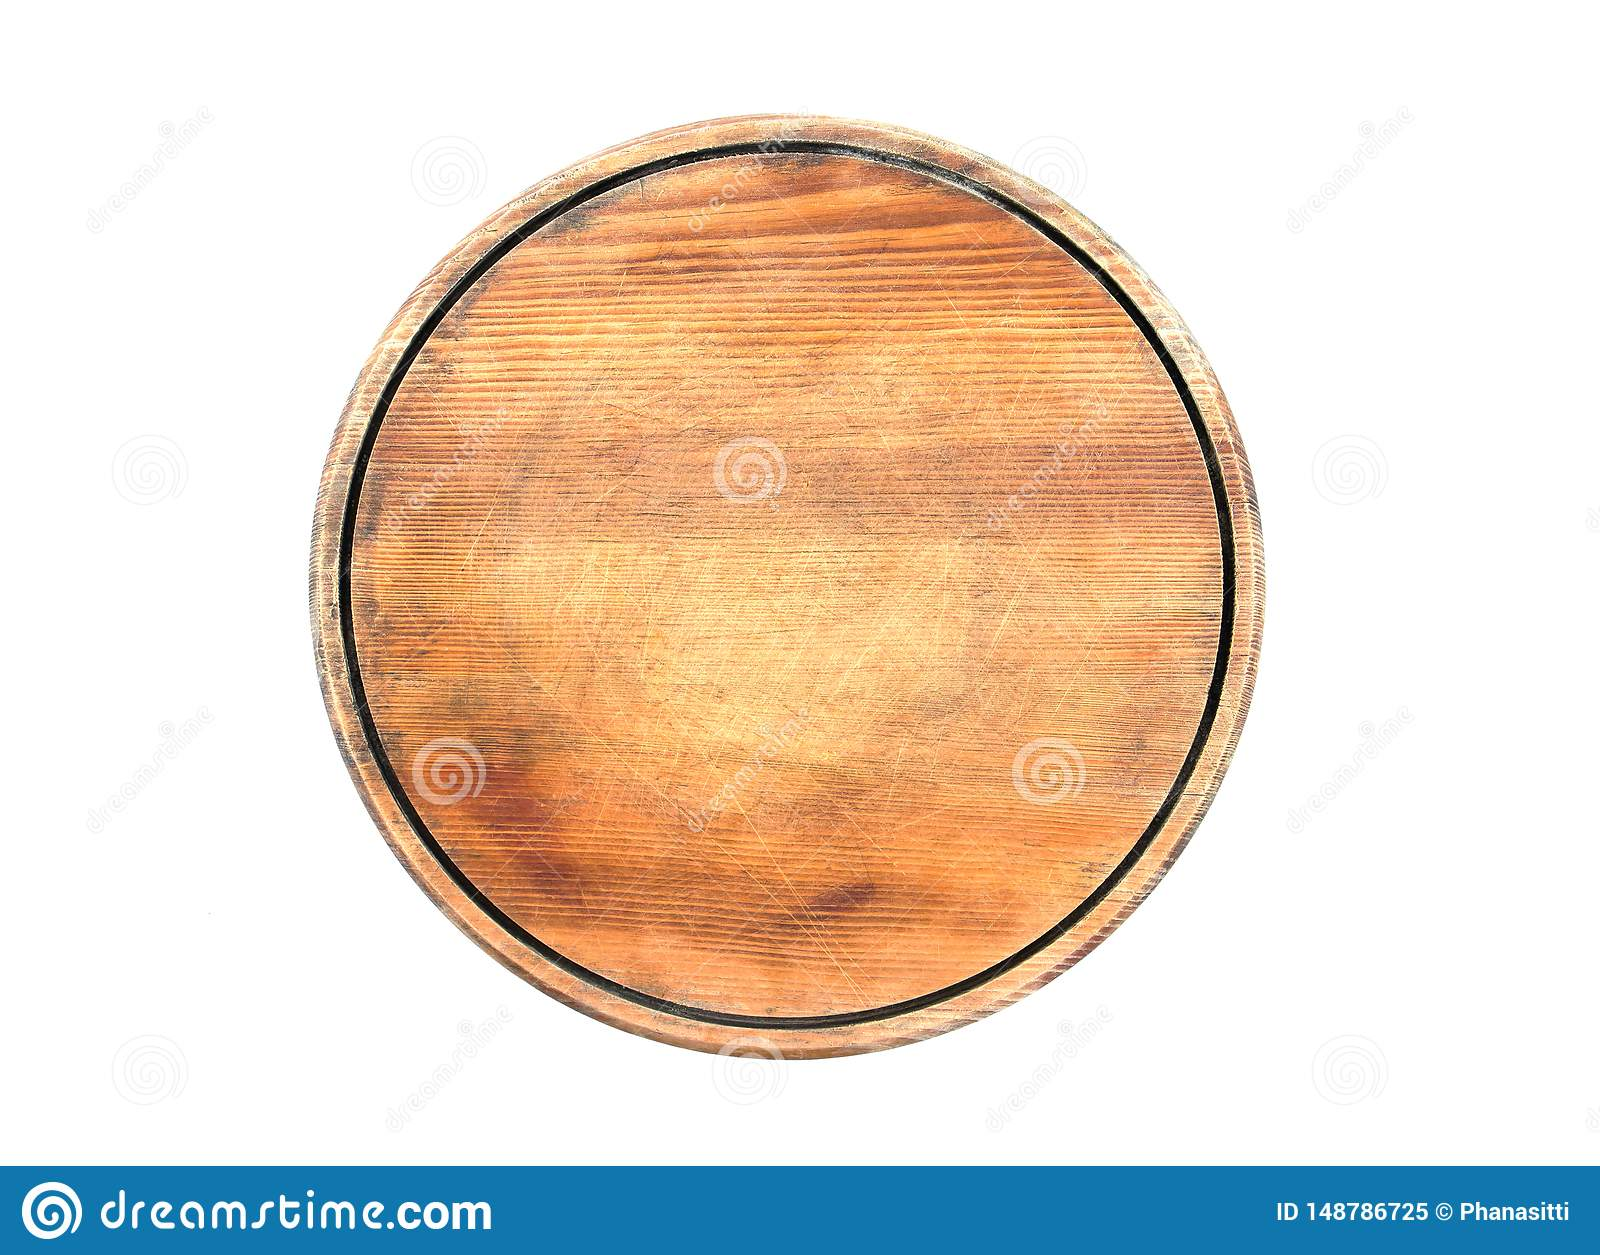 Round Wood Cutting Board Isolated On White Background Round Wooden Chopping Board Isolated Stock Image Image Of Dish Ware 148786725